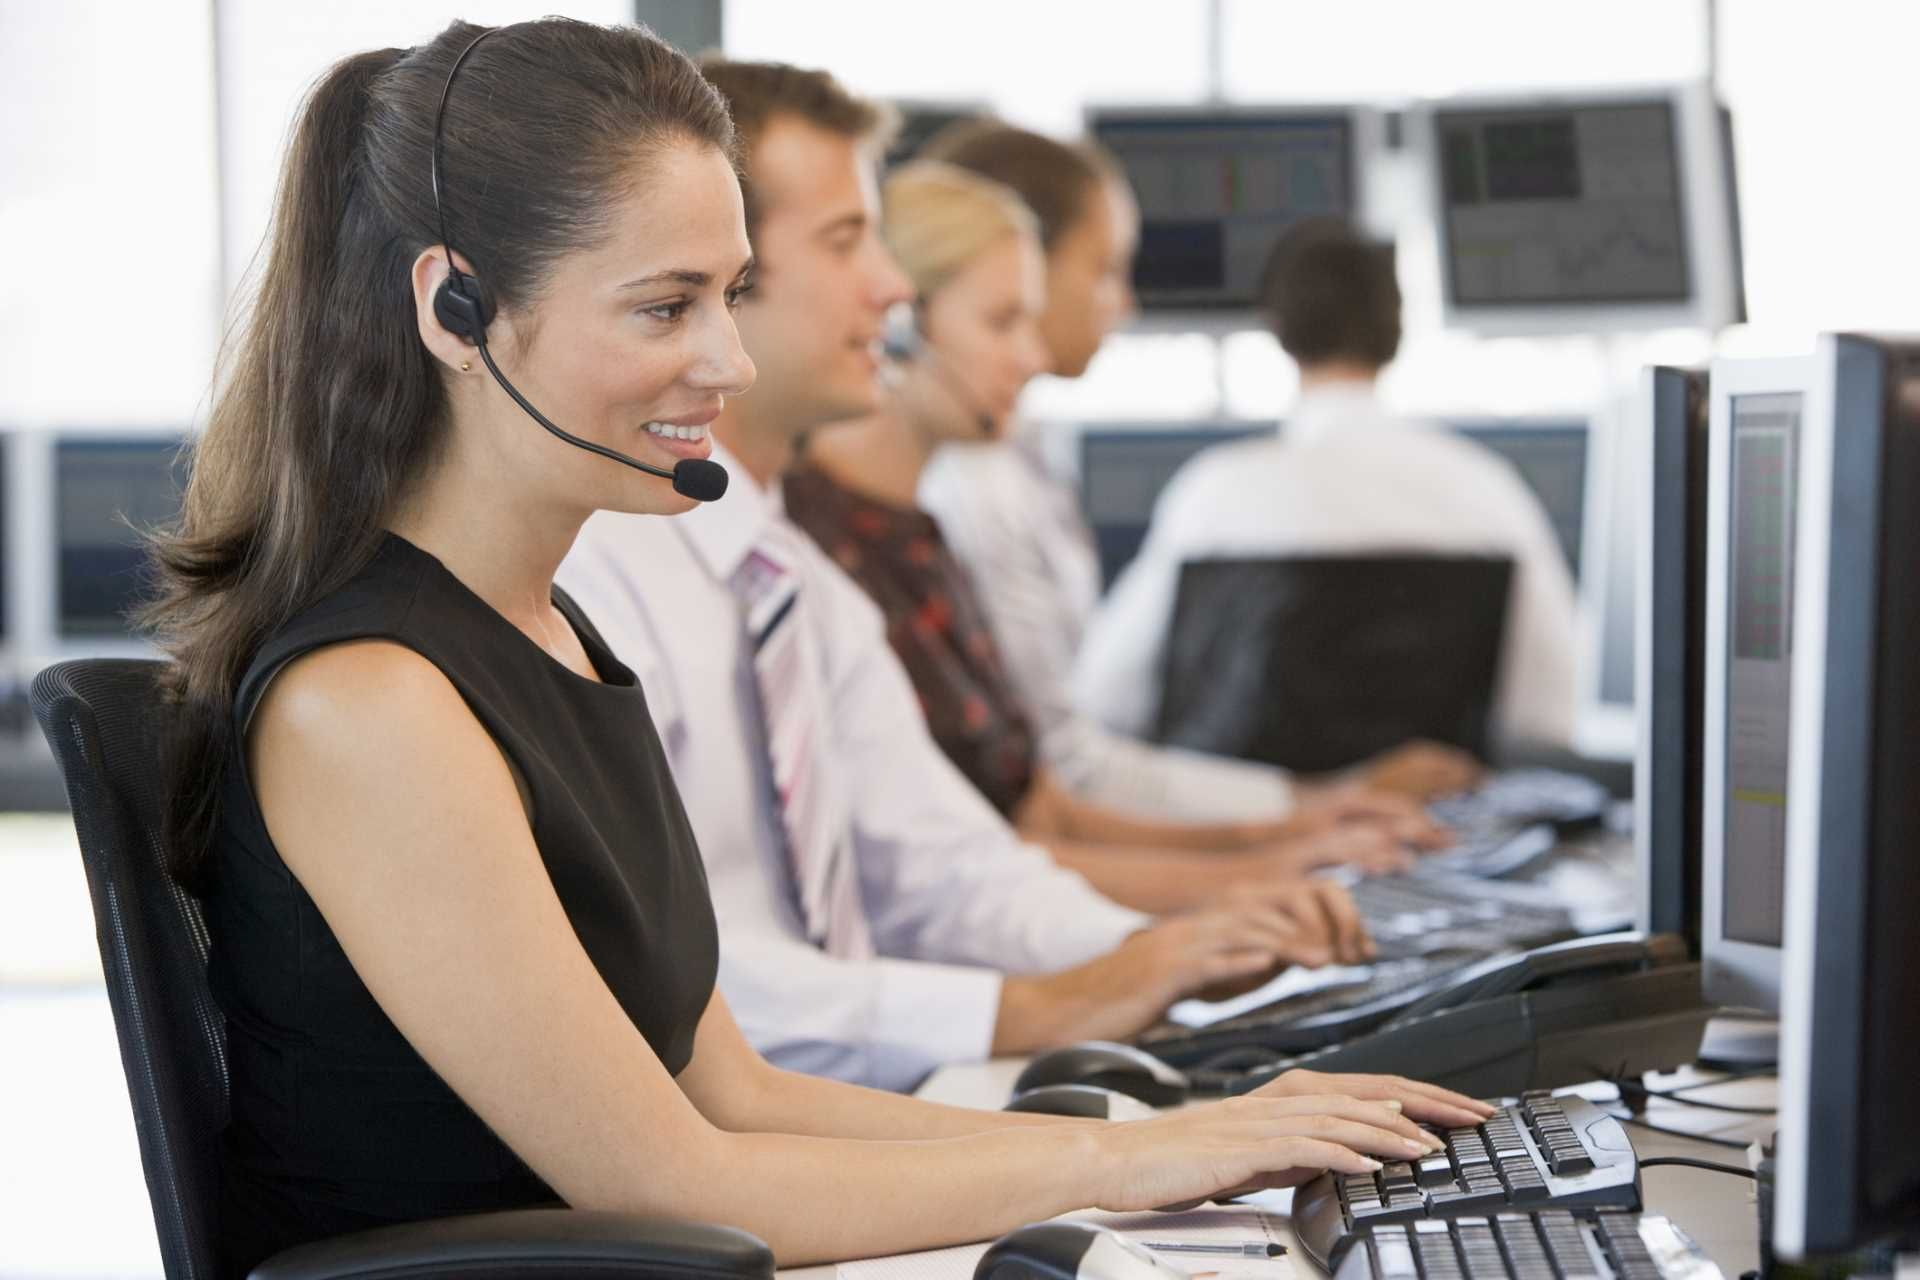 Local Staffing Services For Jobs In Customer Service Or Call